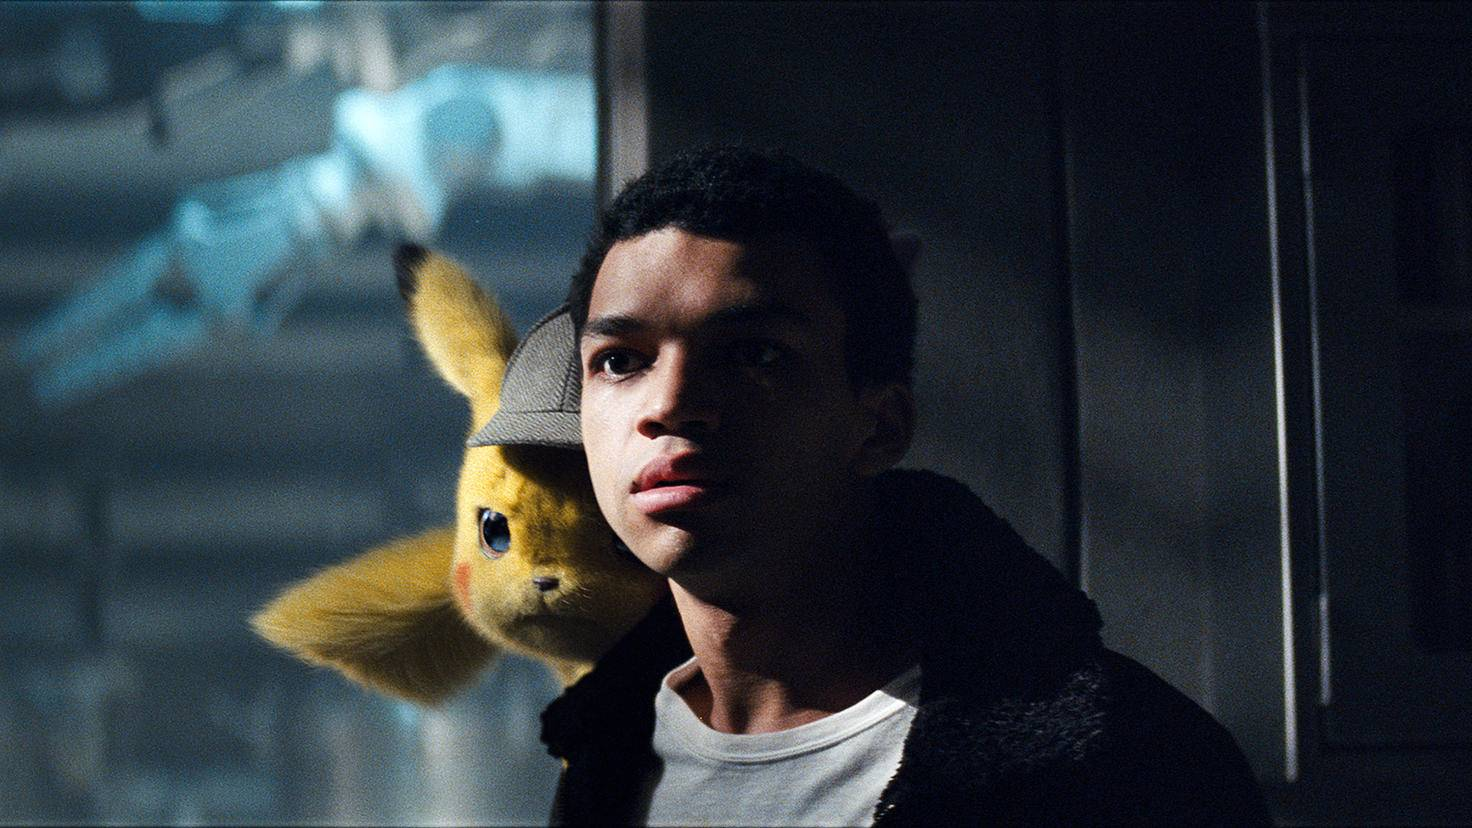 Justice Smith in Meisterdetektiv Pikachu Detective Pikachu